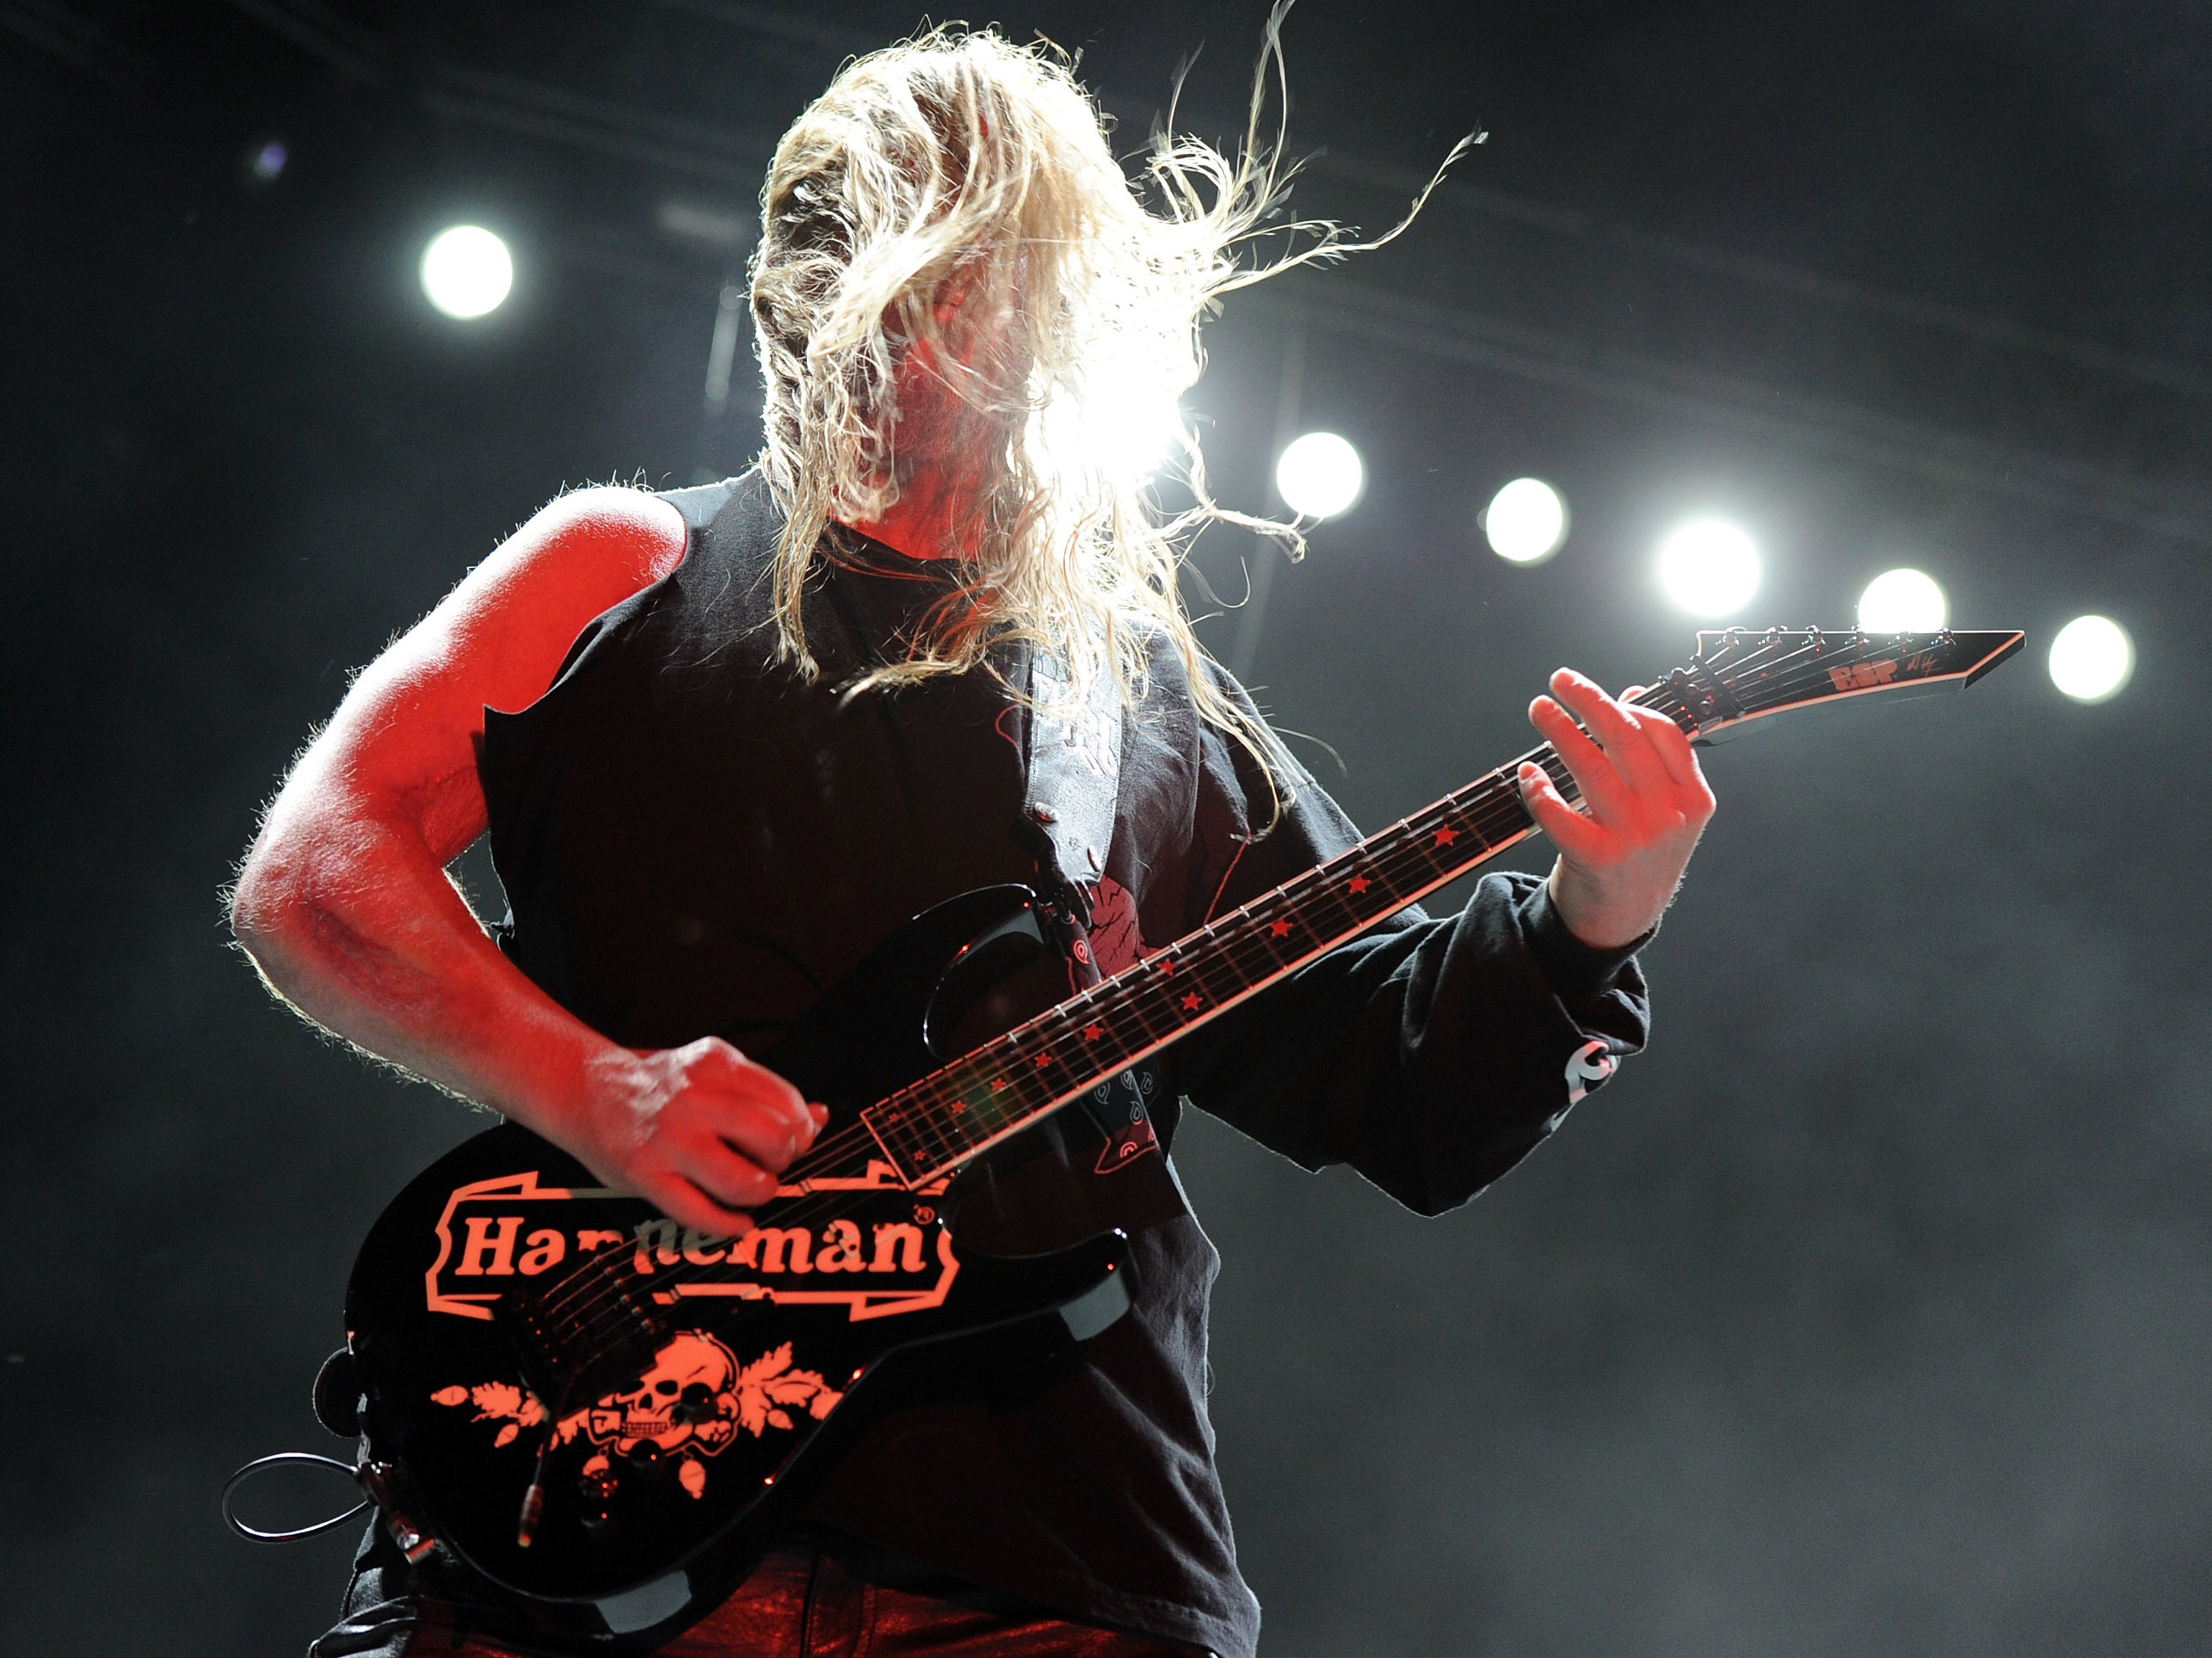 'A Truth Never Told': Remembering Slayer's Jeff Hanneman